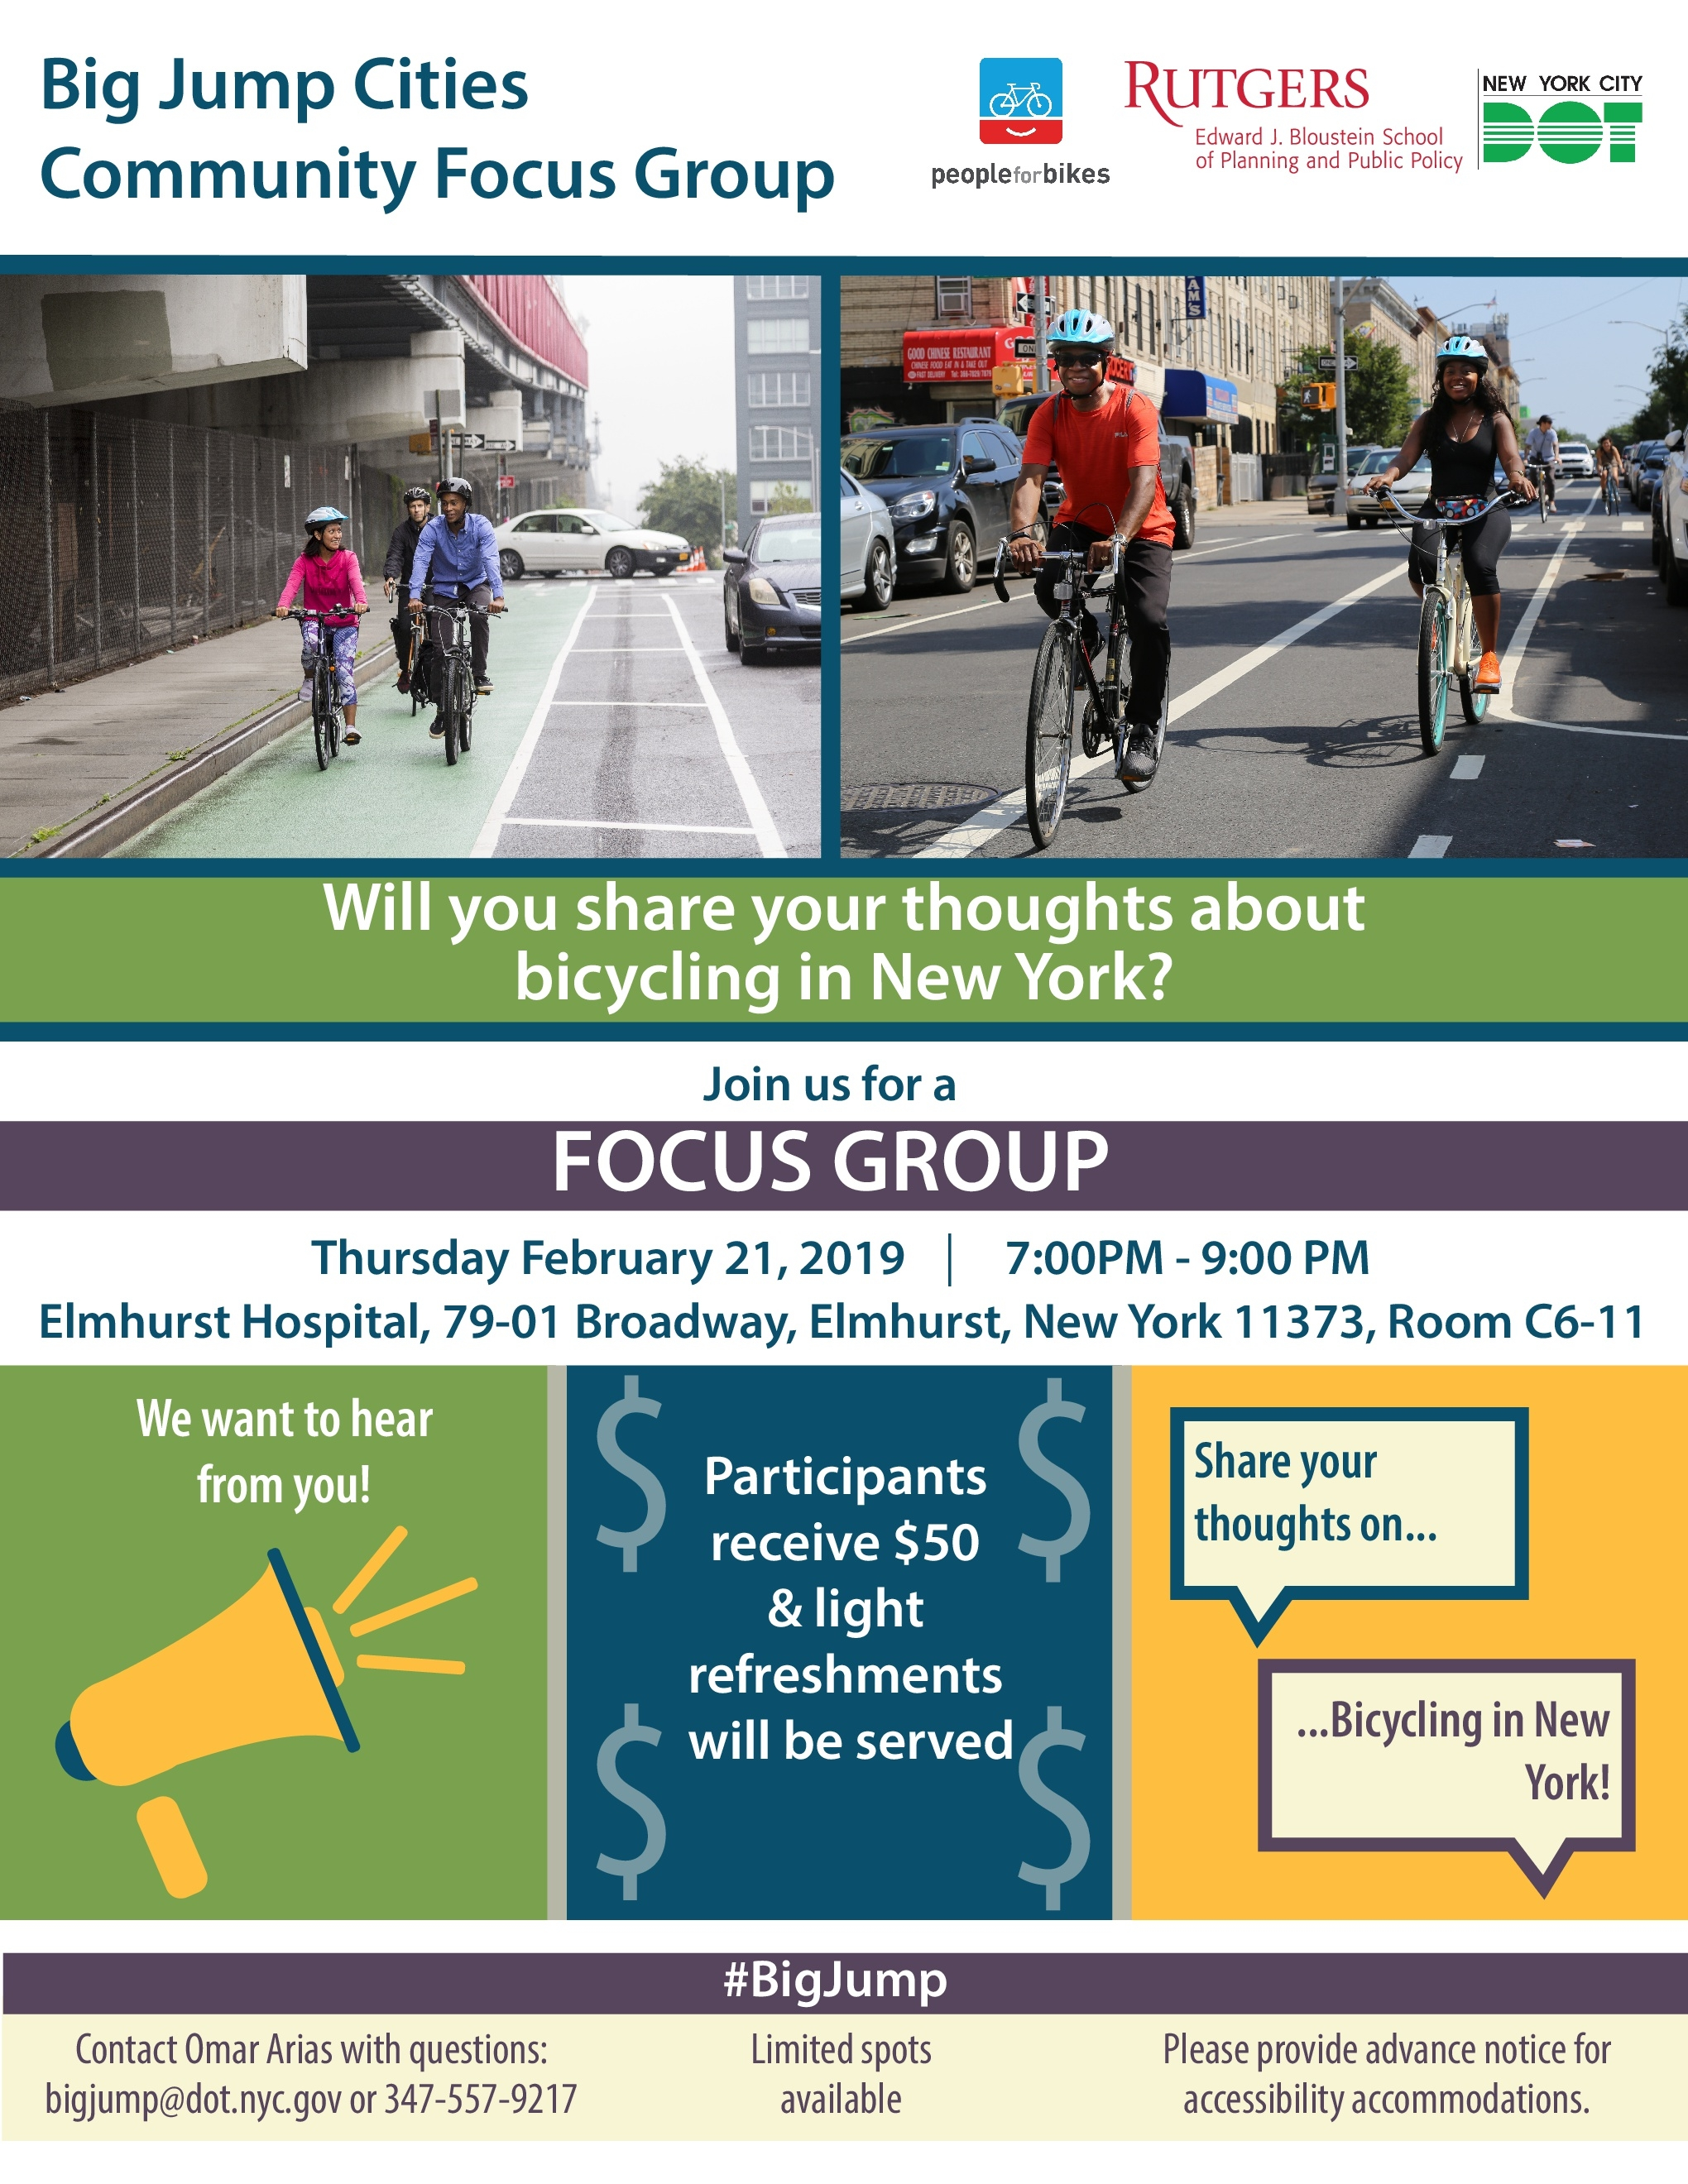 Community Focus Group February 21 2019